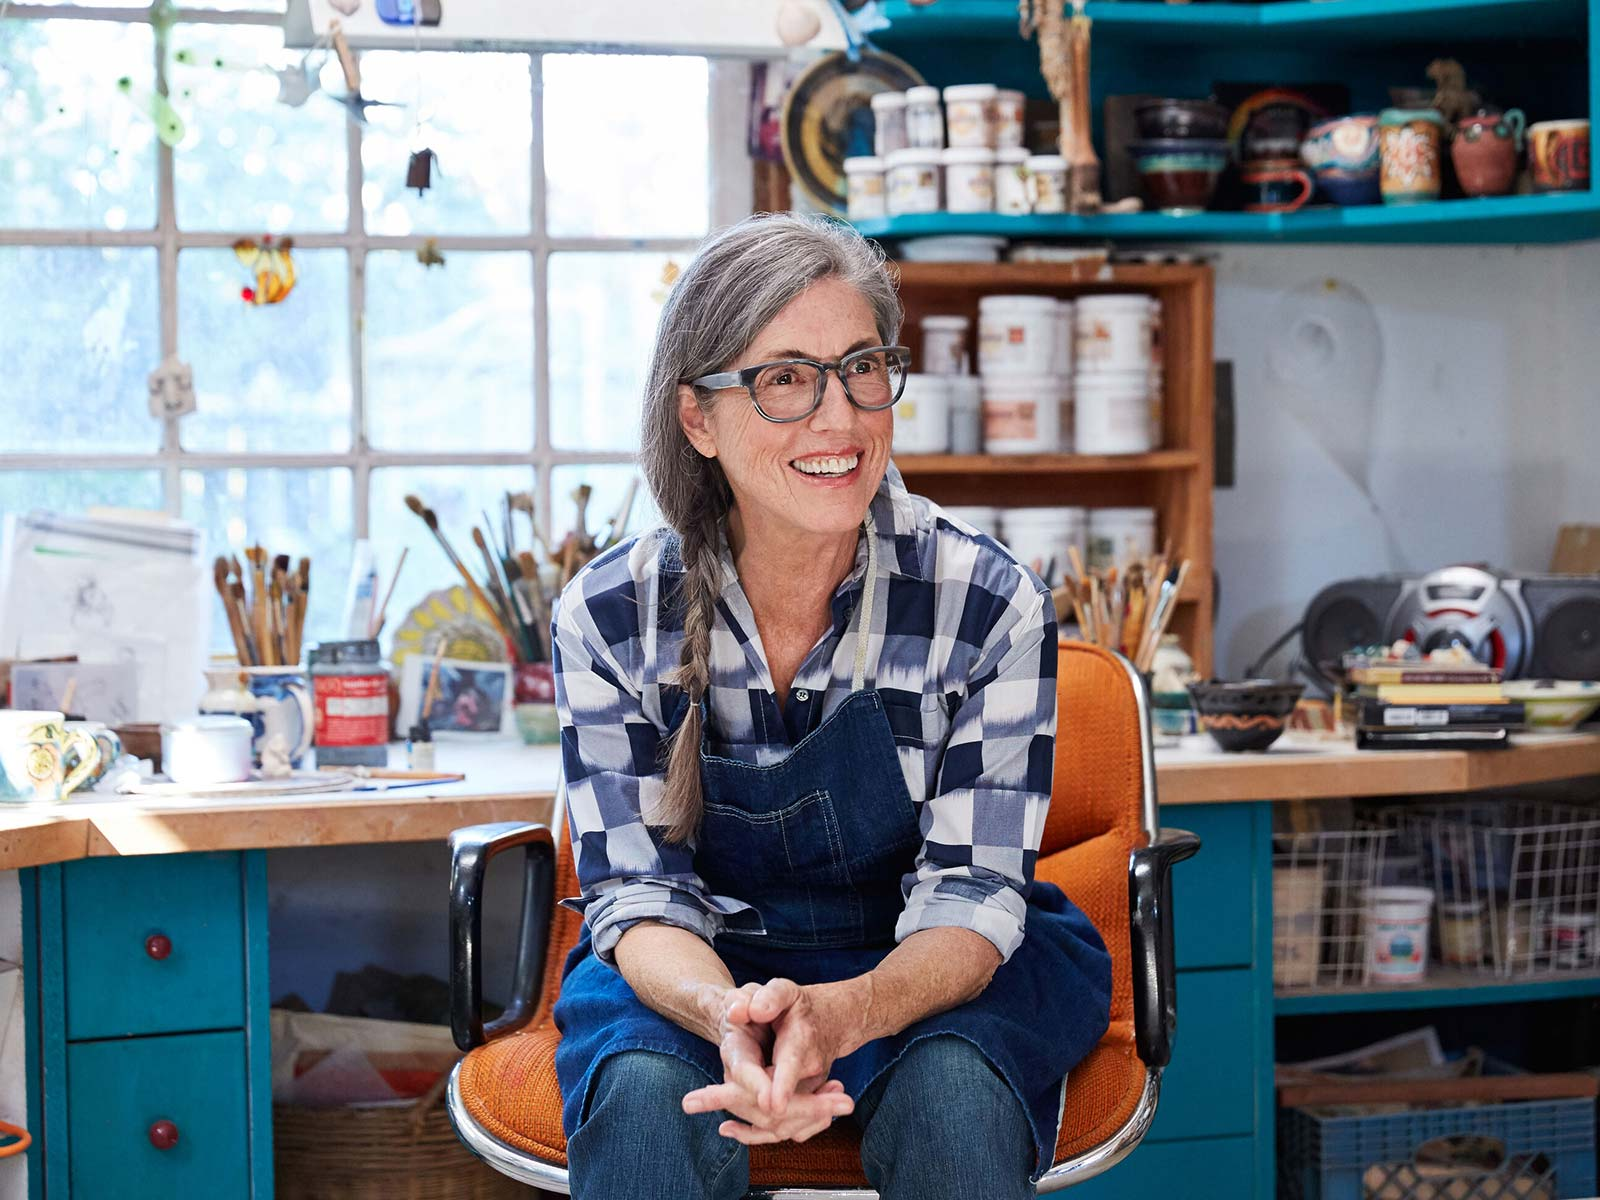 Female artist with gray side braid and glasses in a blue apron sitting in front of her studio workbench